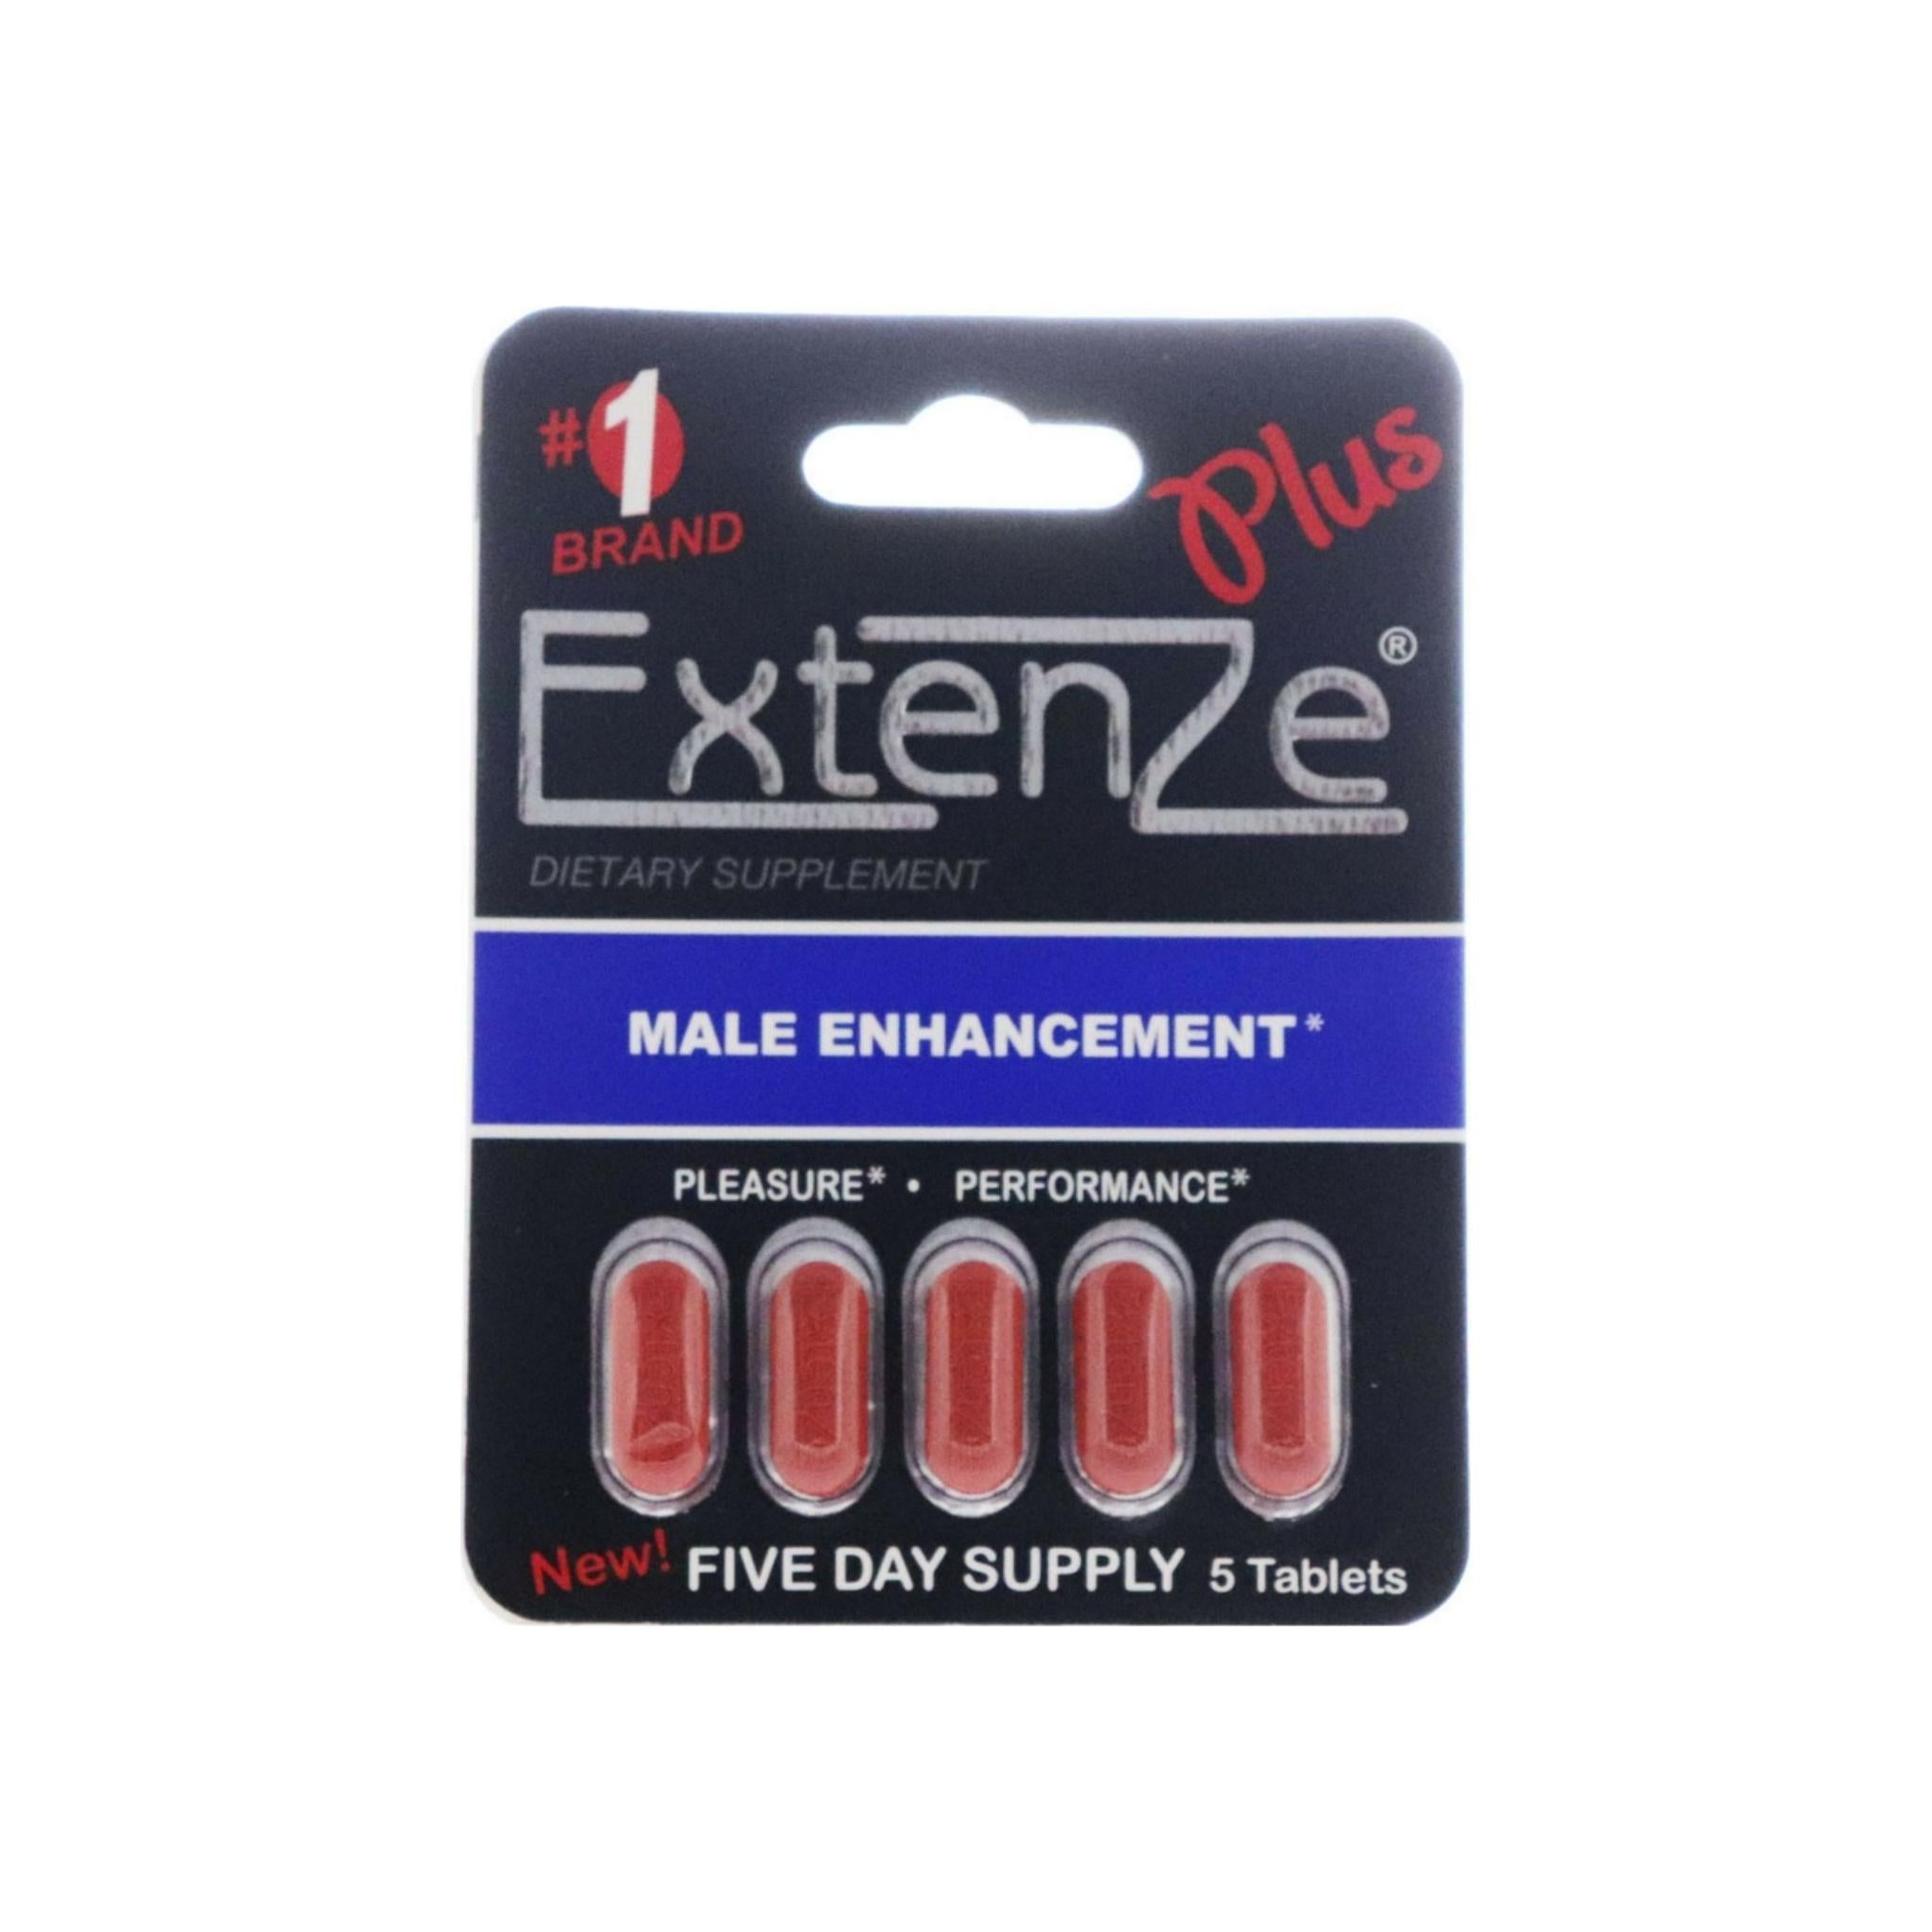 What Works Better Extenze Or Enzyte